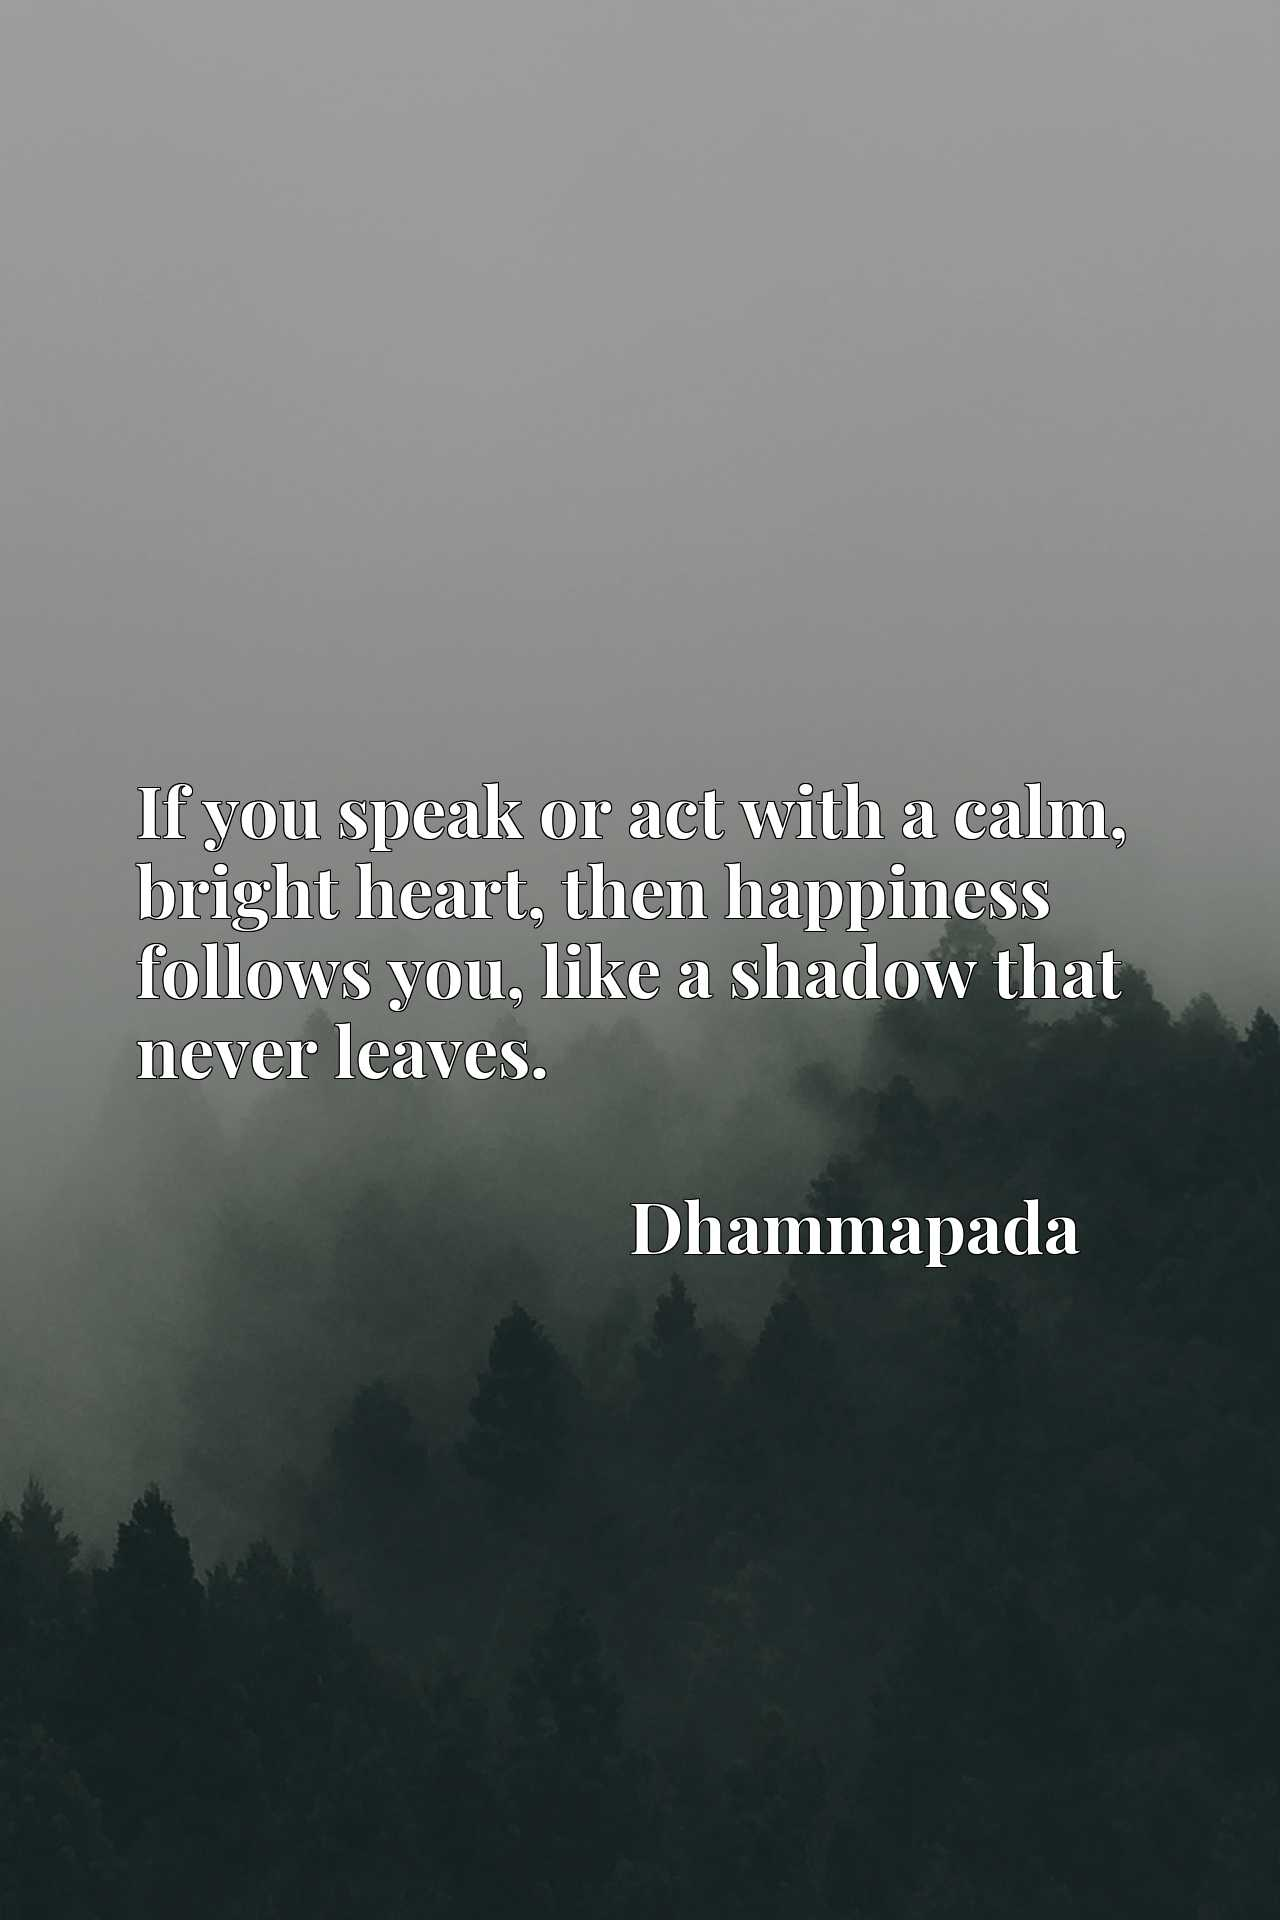 If you speak or act with a calm, bright heart, then happiness follows you, like a shadow that never leaves.